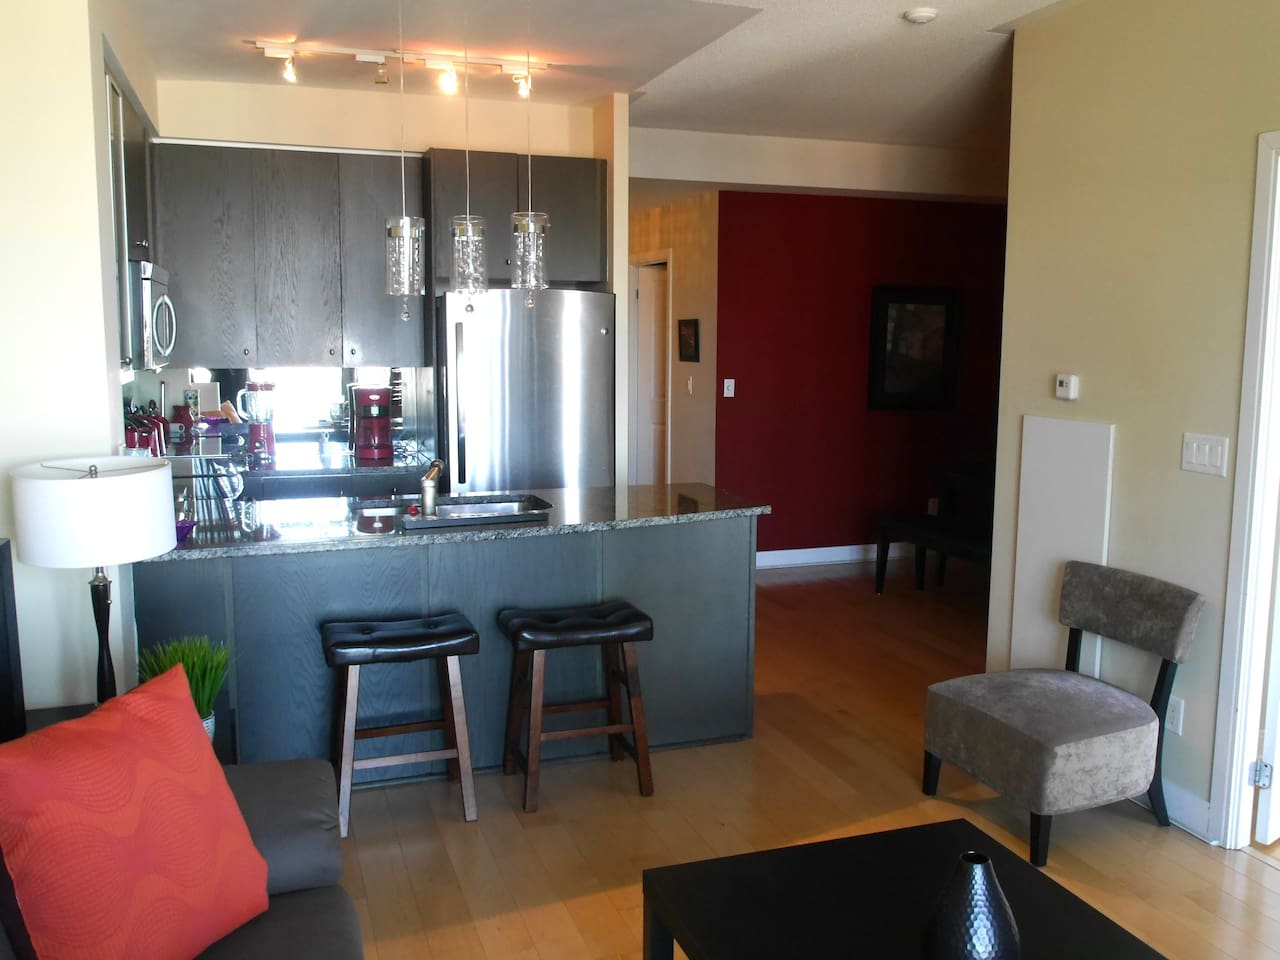 Spacious unit with hardwood floors throughout